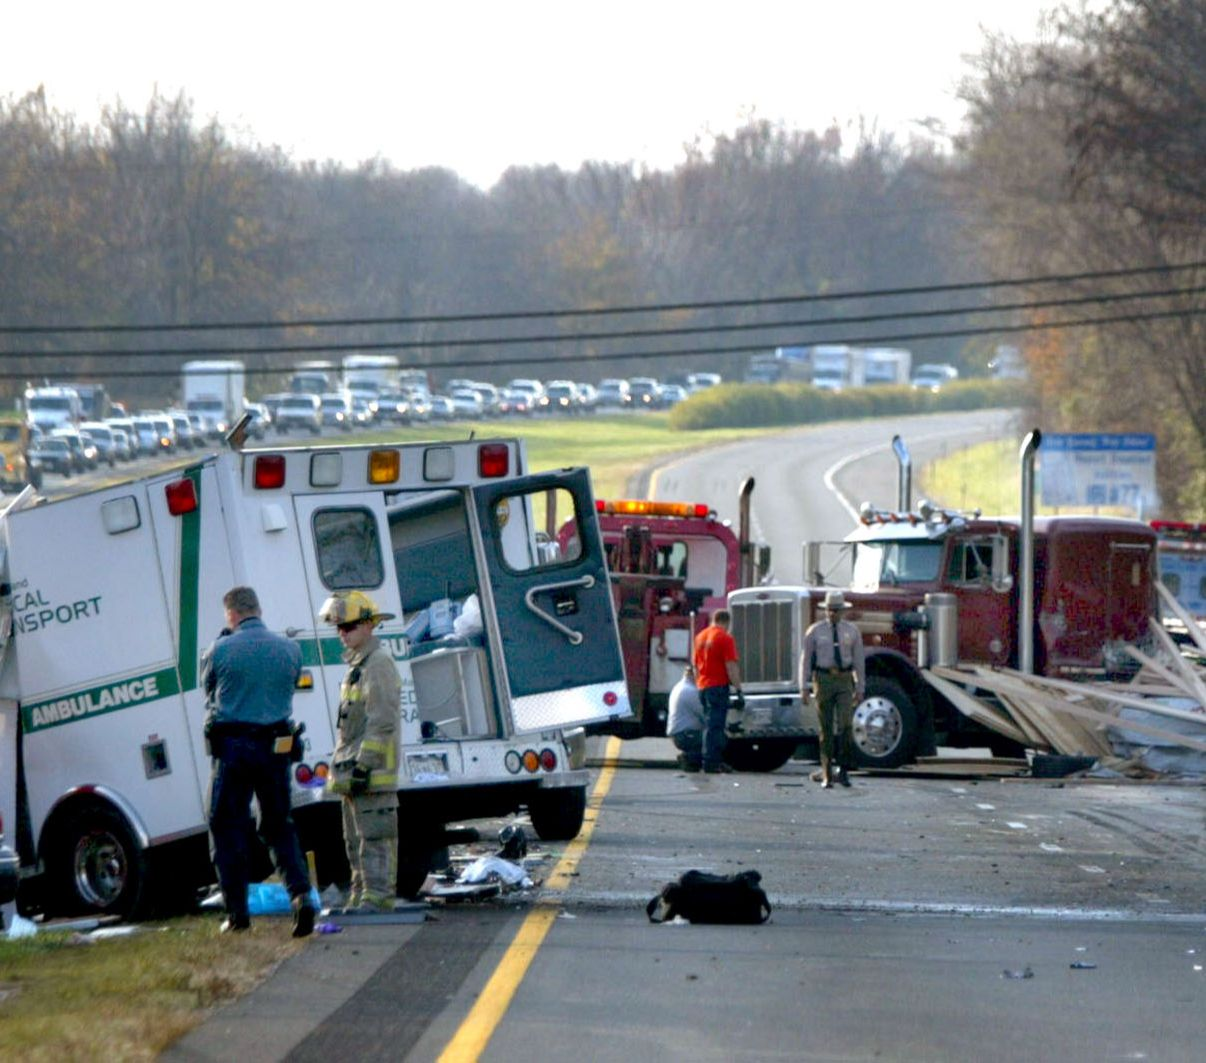 Double Attacks And On Violent Lodd Ems Ambulance-collision